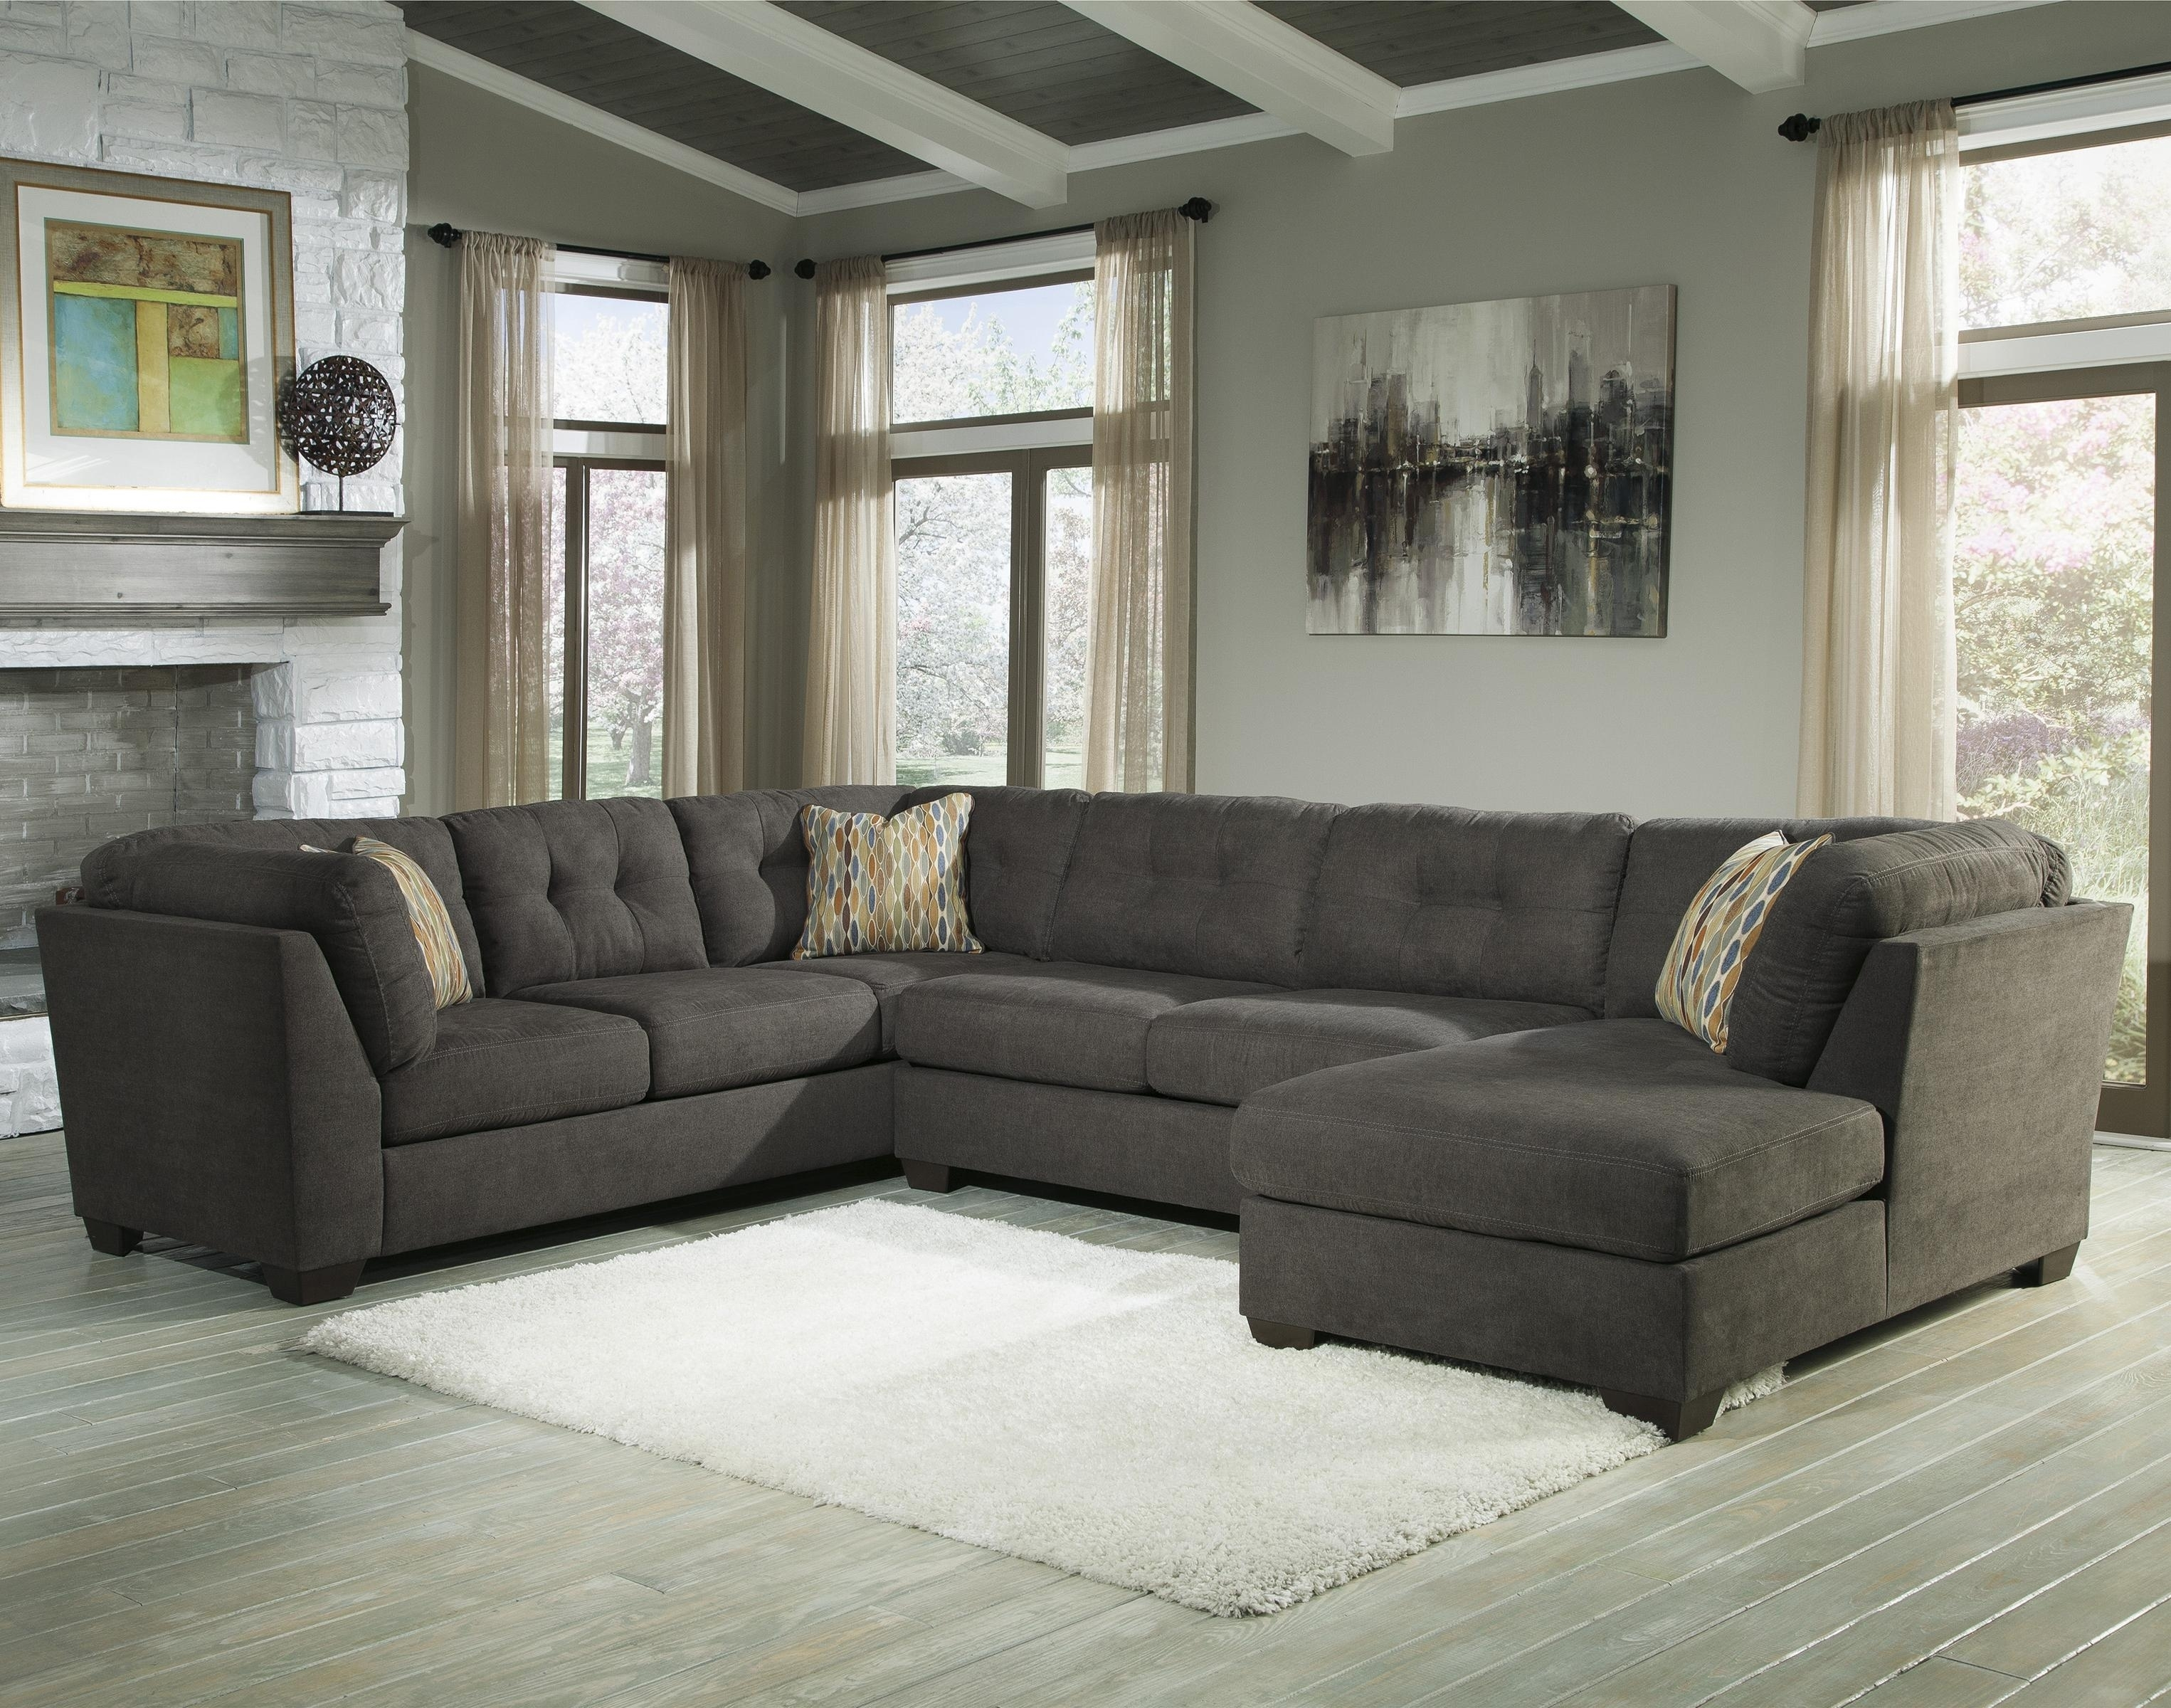 Sectional Sofas Jackson Ms • Sectional Sofa In Jackson Tn Sectional Sofas (Image 6 of 10)